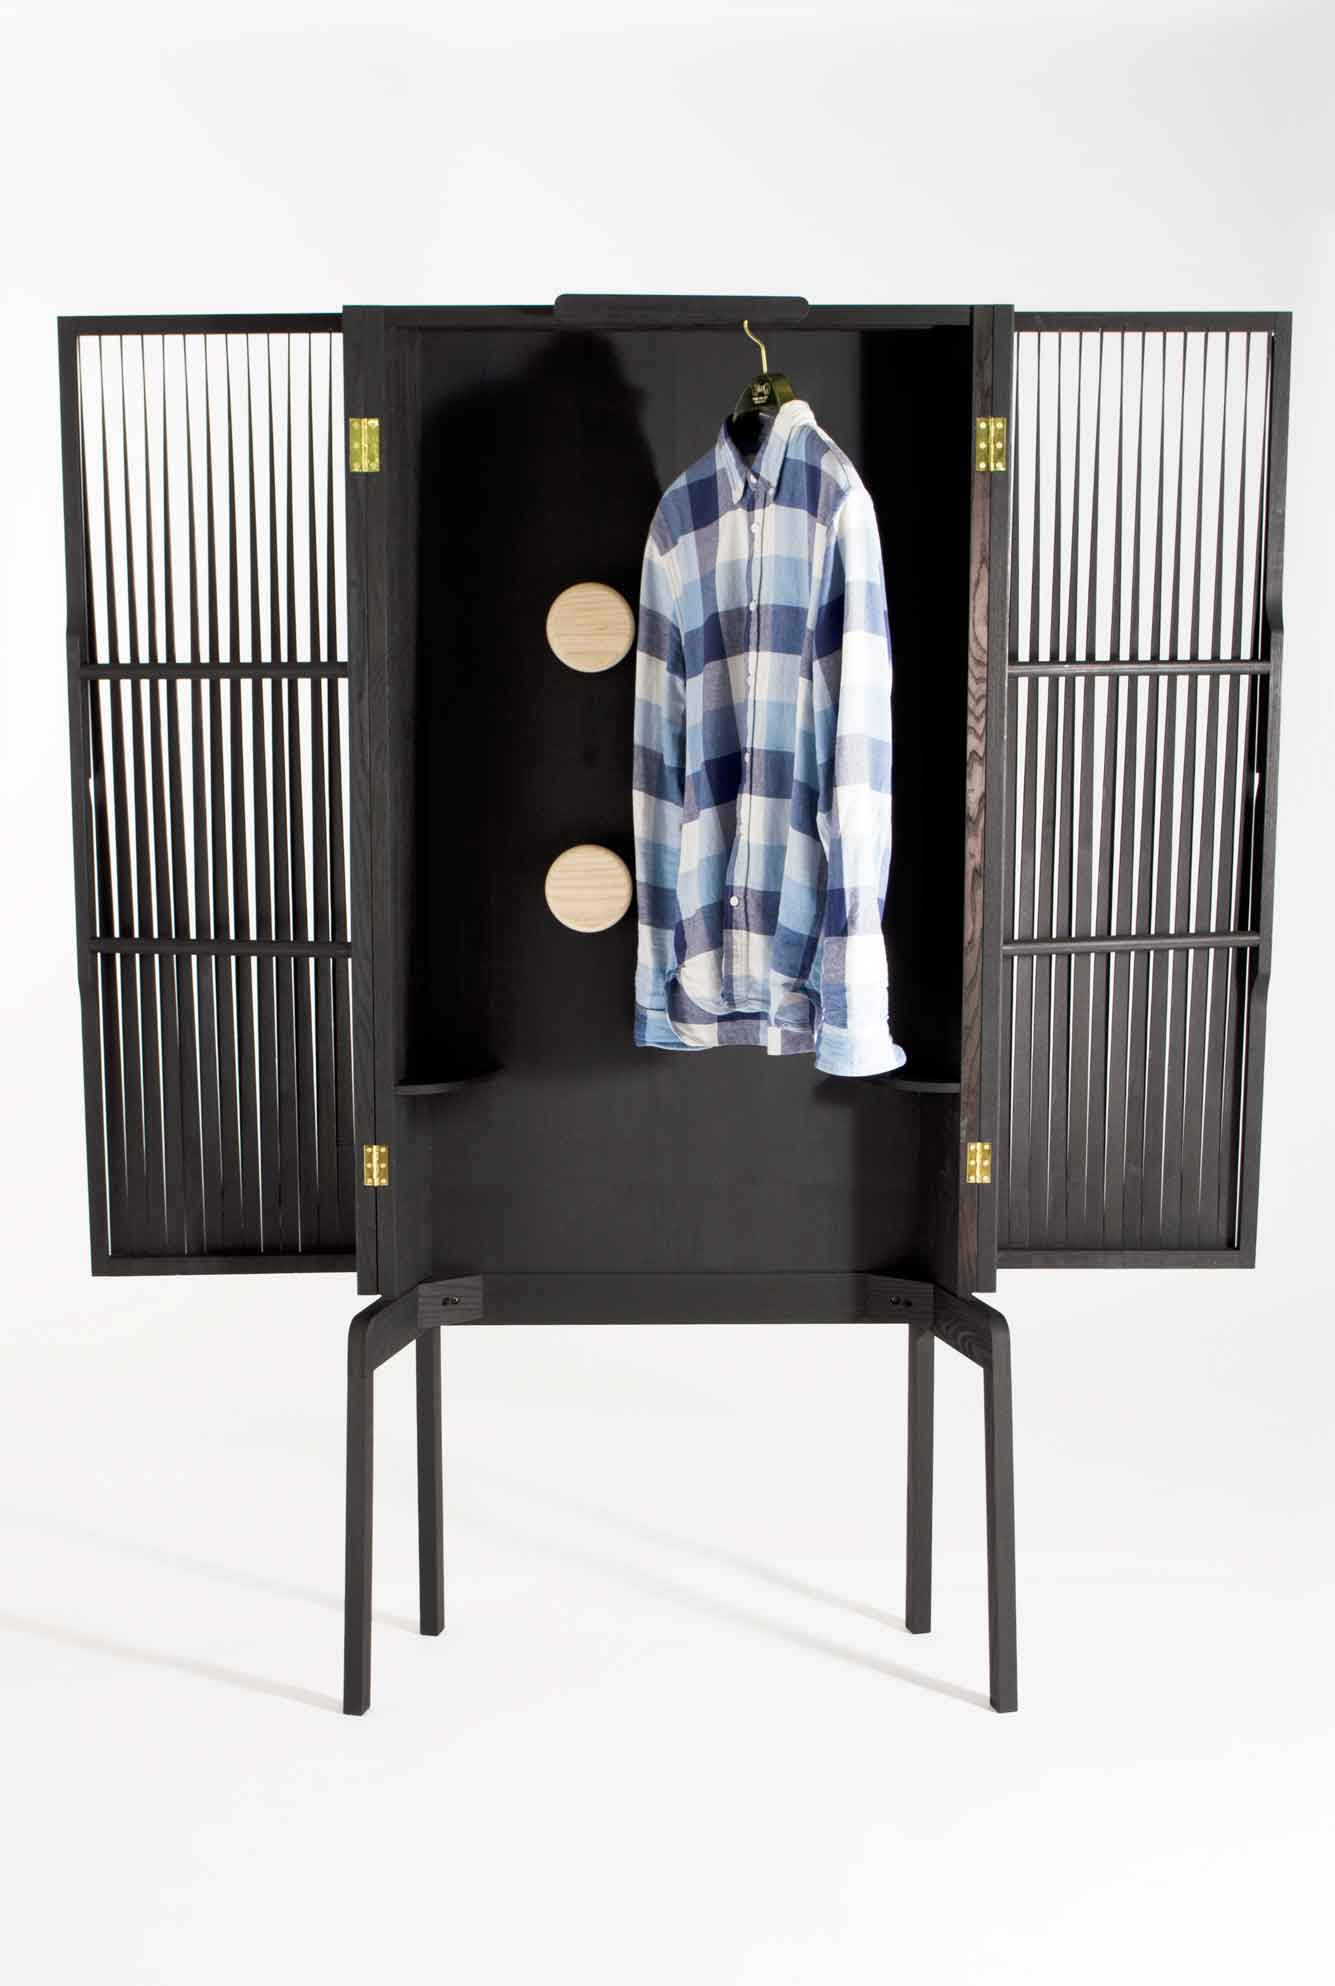 Cabinet by Charlie Styrbjorn Nilsson with Olle K Engberg and Ludwig Berg IMM Cologne   Yellowtrace